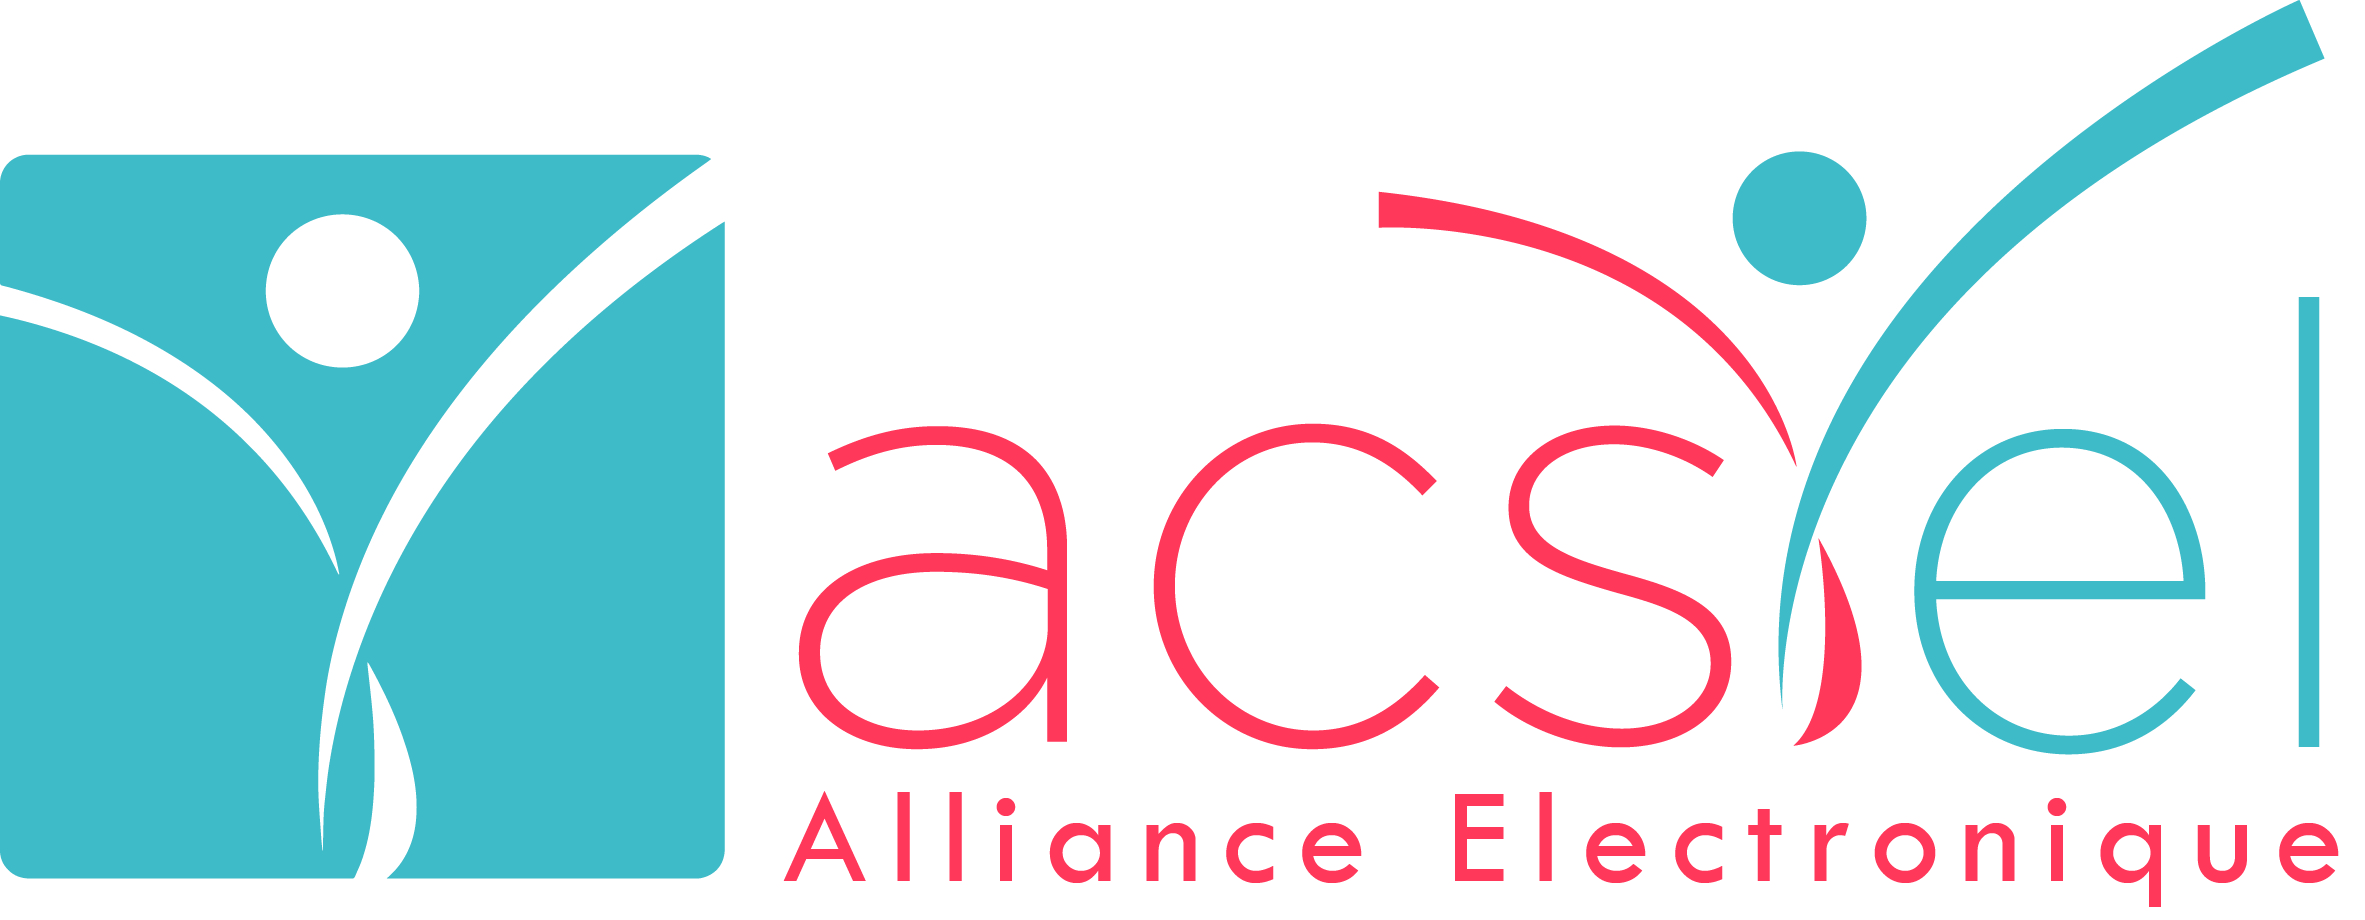 ACSIEL Alliance Electronique